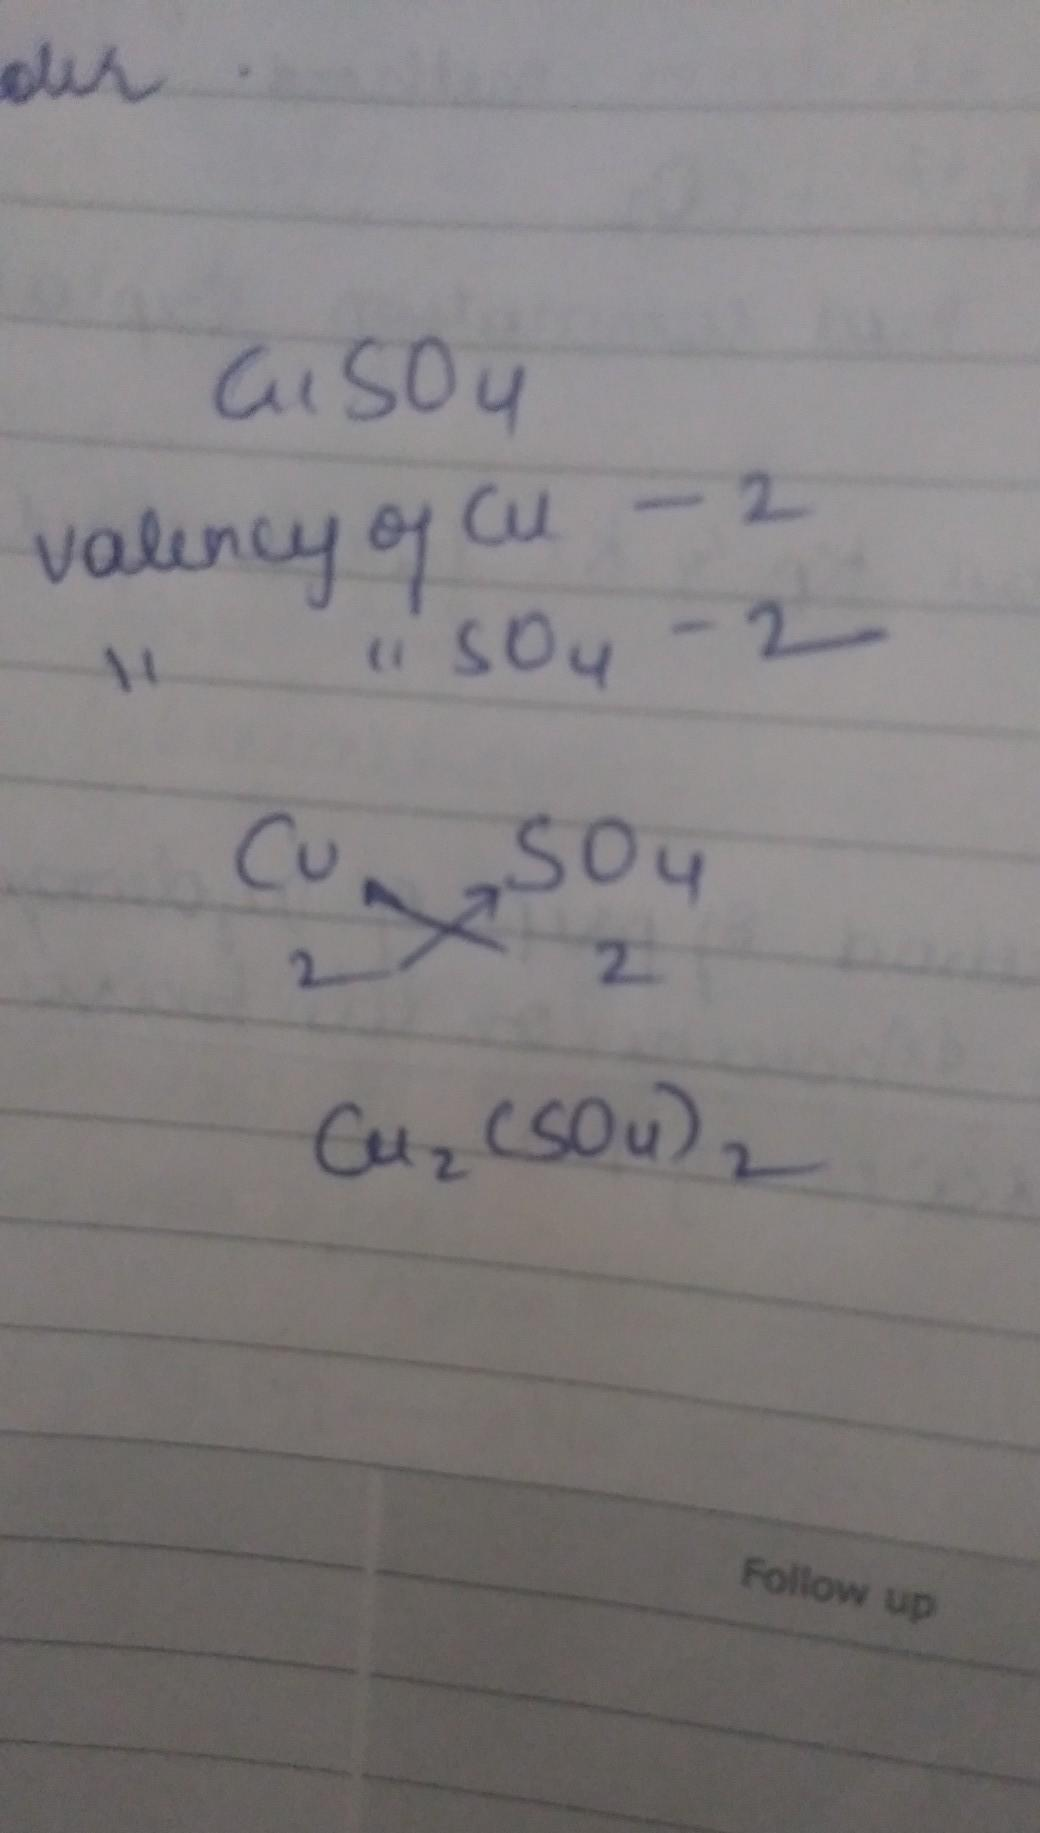 Chemical Formula Of Copper Sulphate By Criss Cross Method